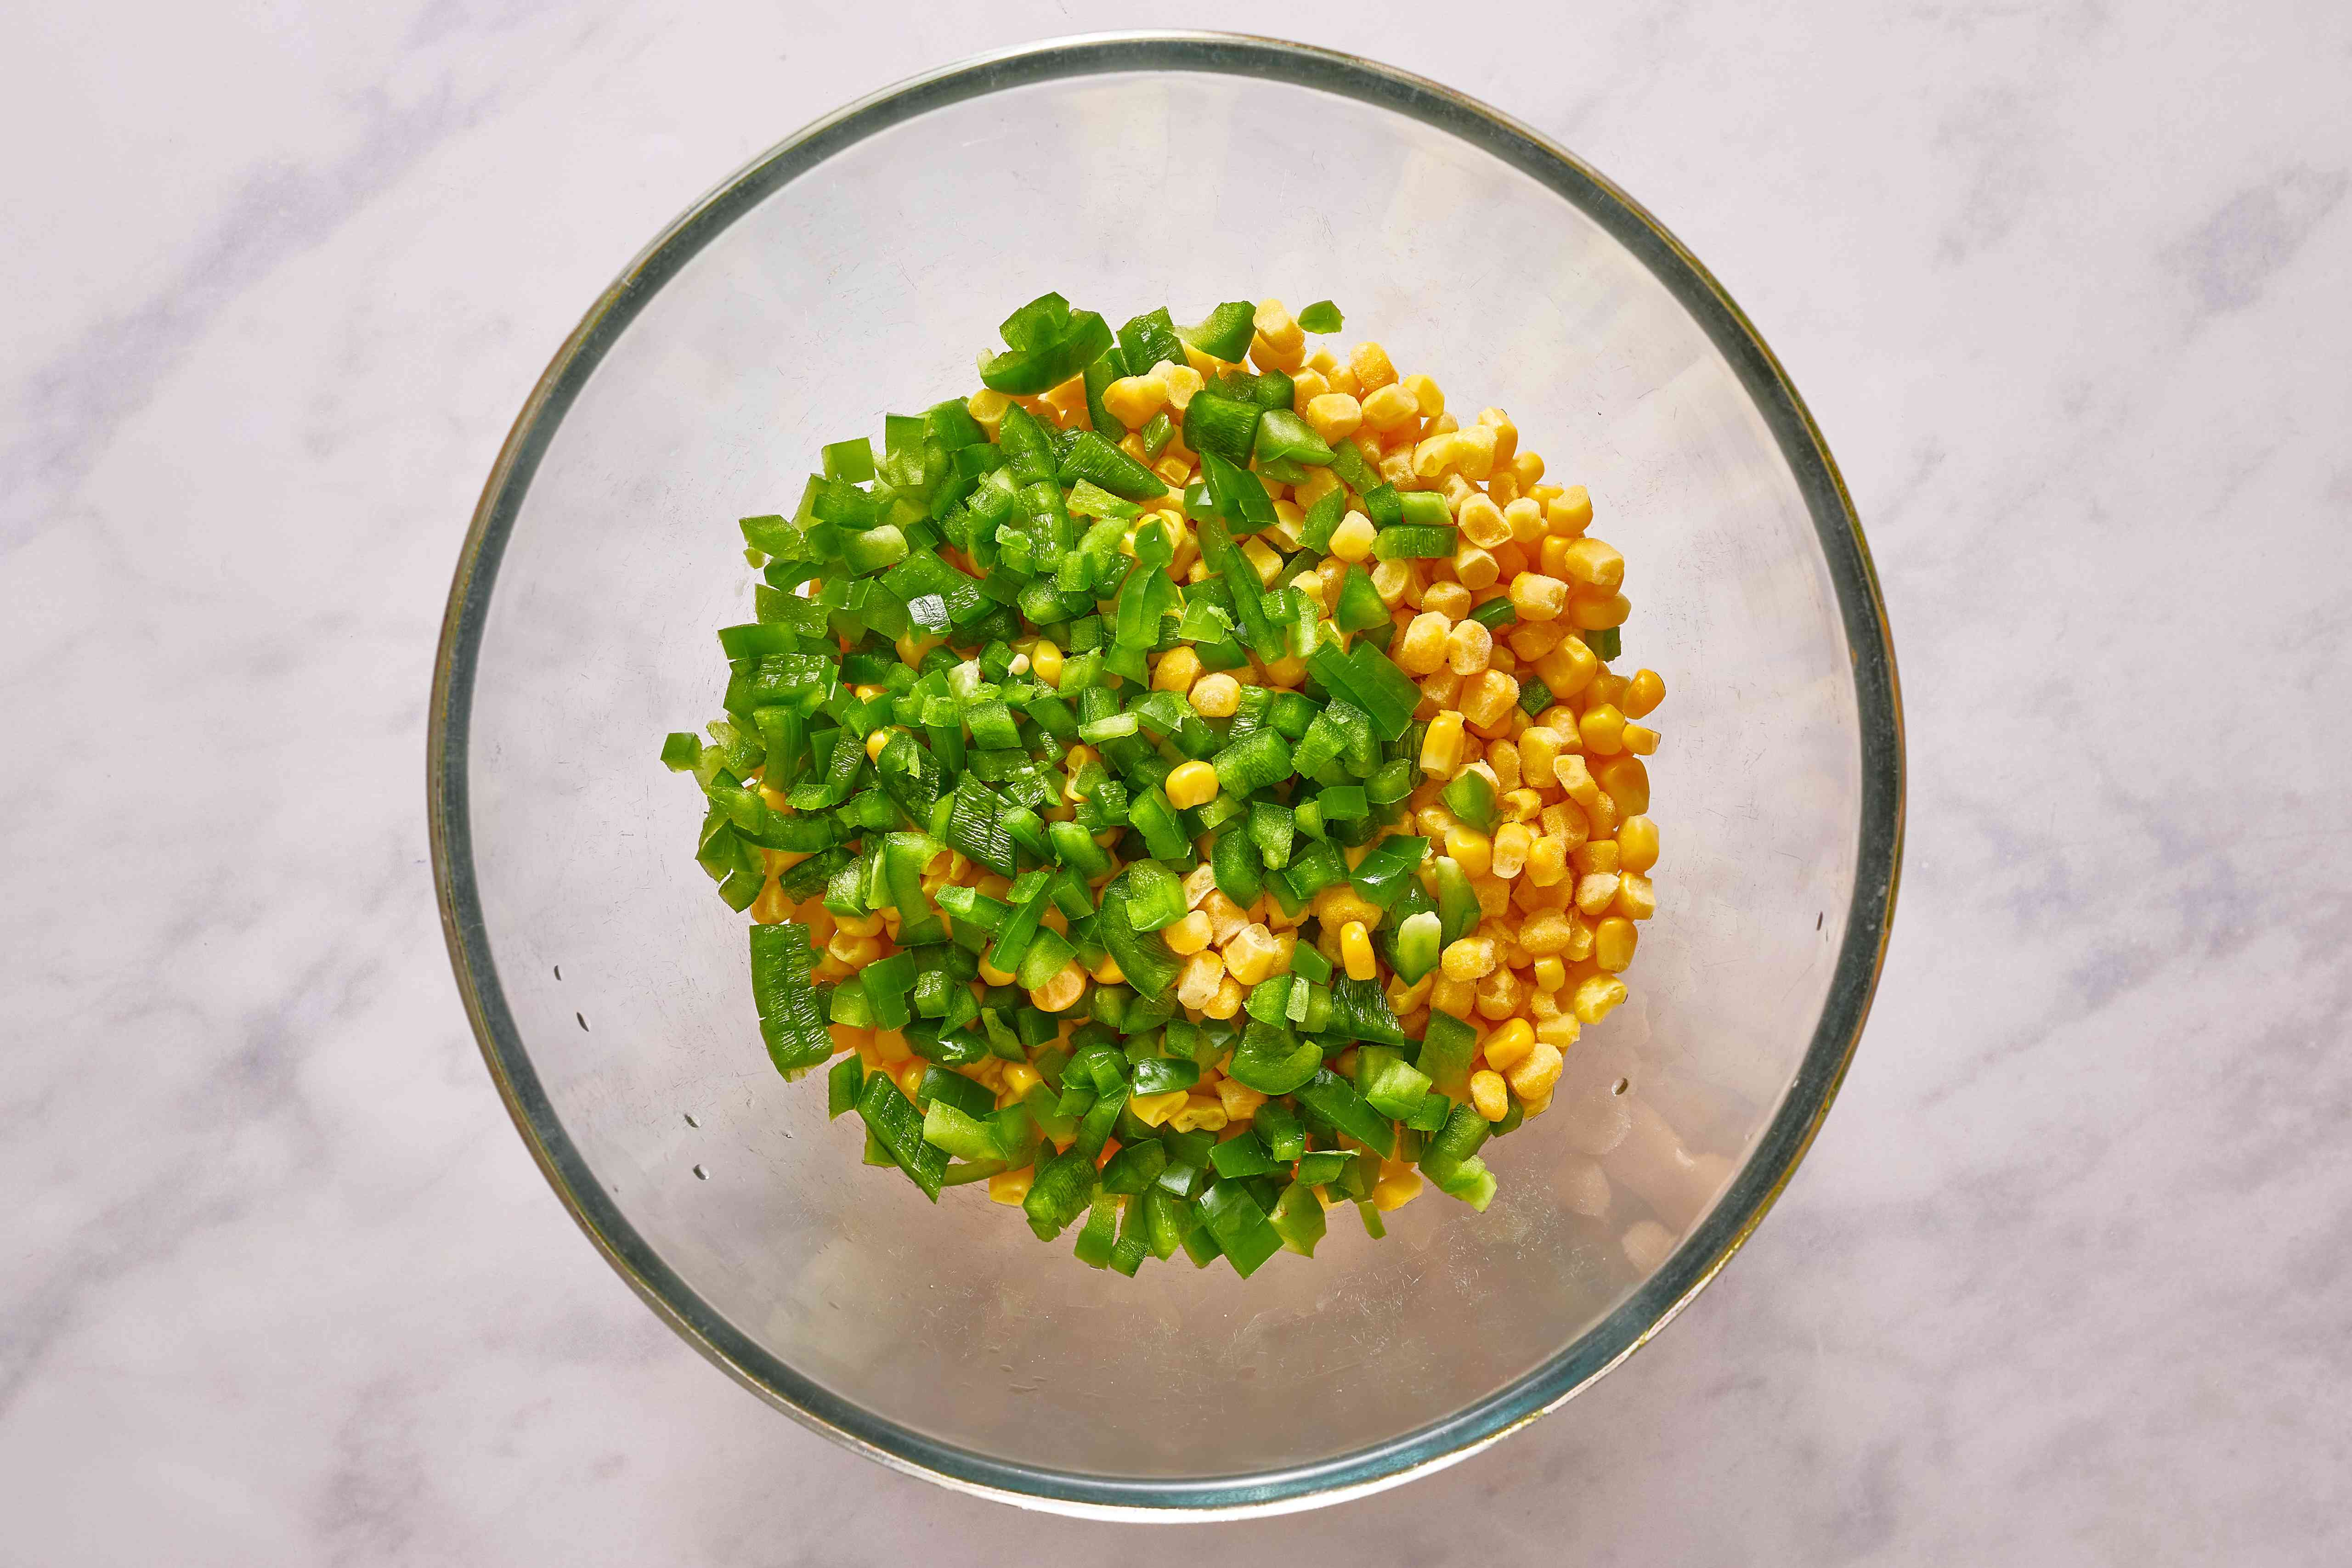 In a large bowl, place the corn kernels and the diced chile peppers